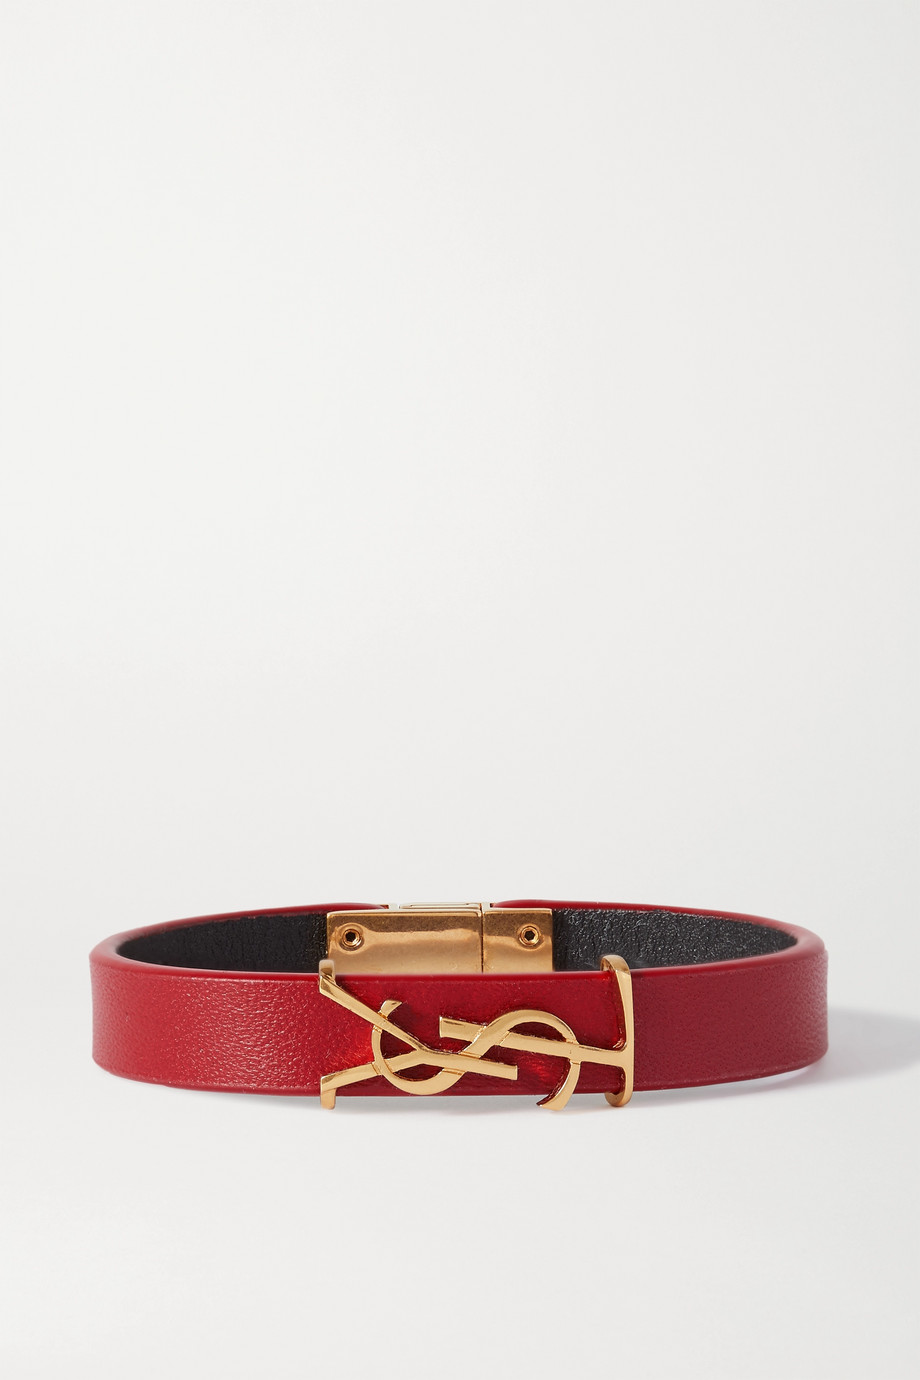 SAINT LAURENT Leather and gold-tone bracelet